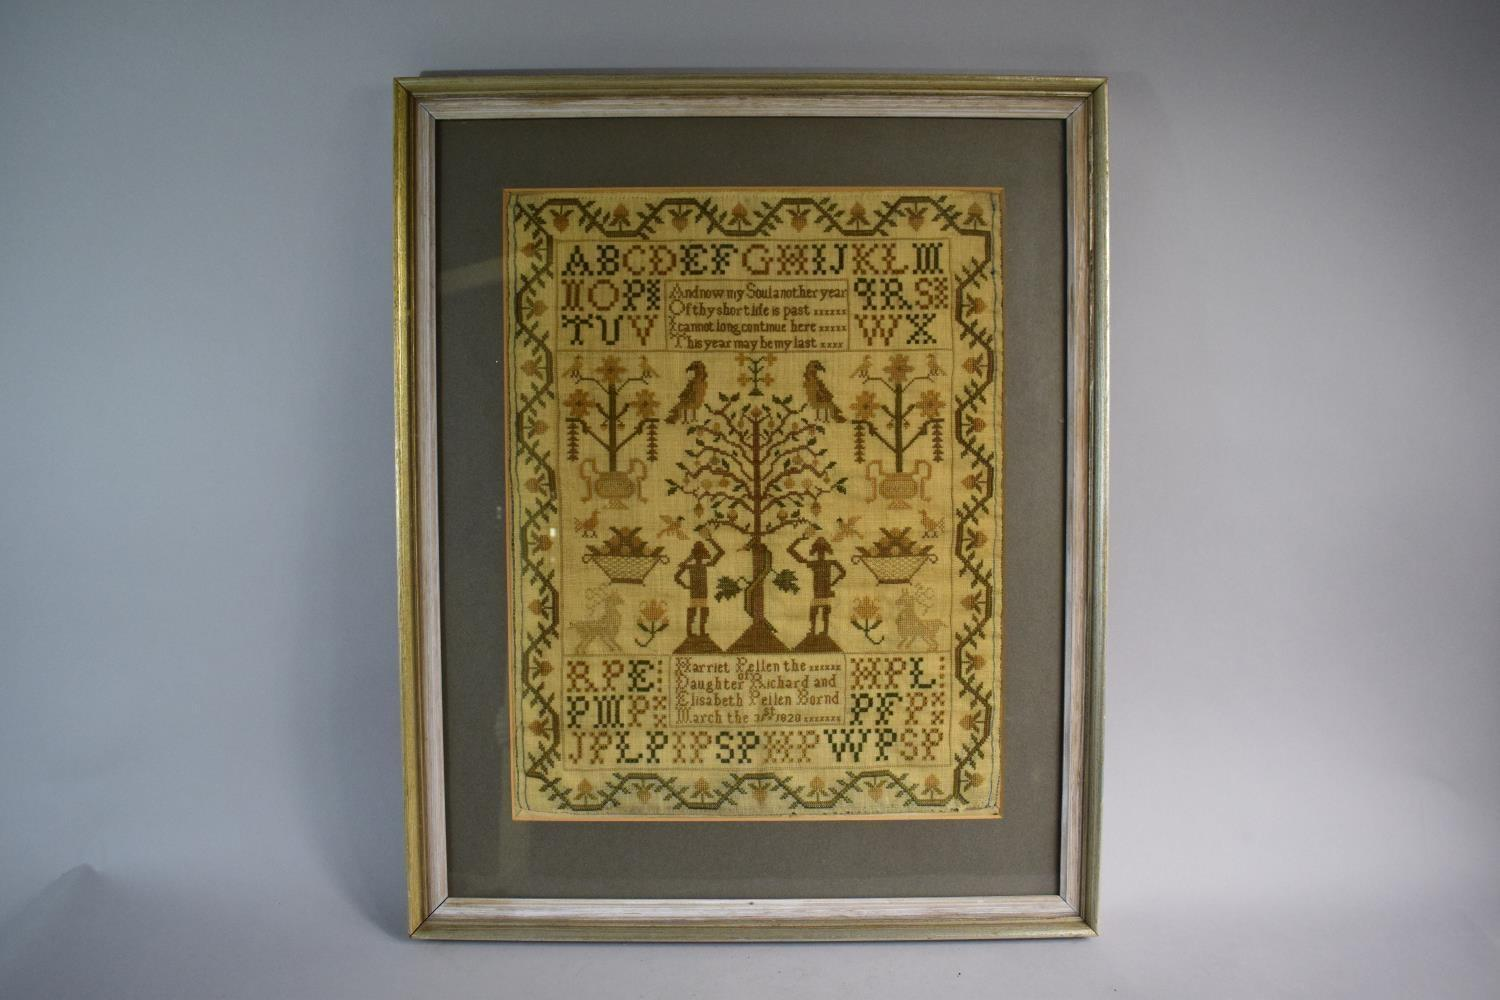 Lot 6 - A Framed Early 19th Century Needlework Sampler Depicting Adam and Eve, Snake and Apple Tree Together